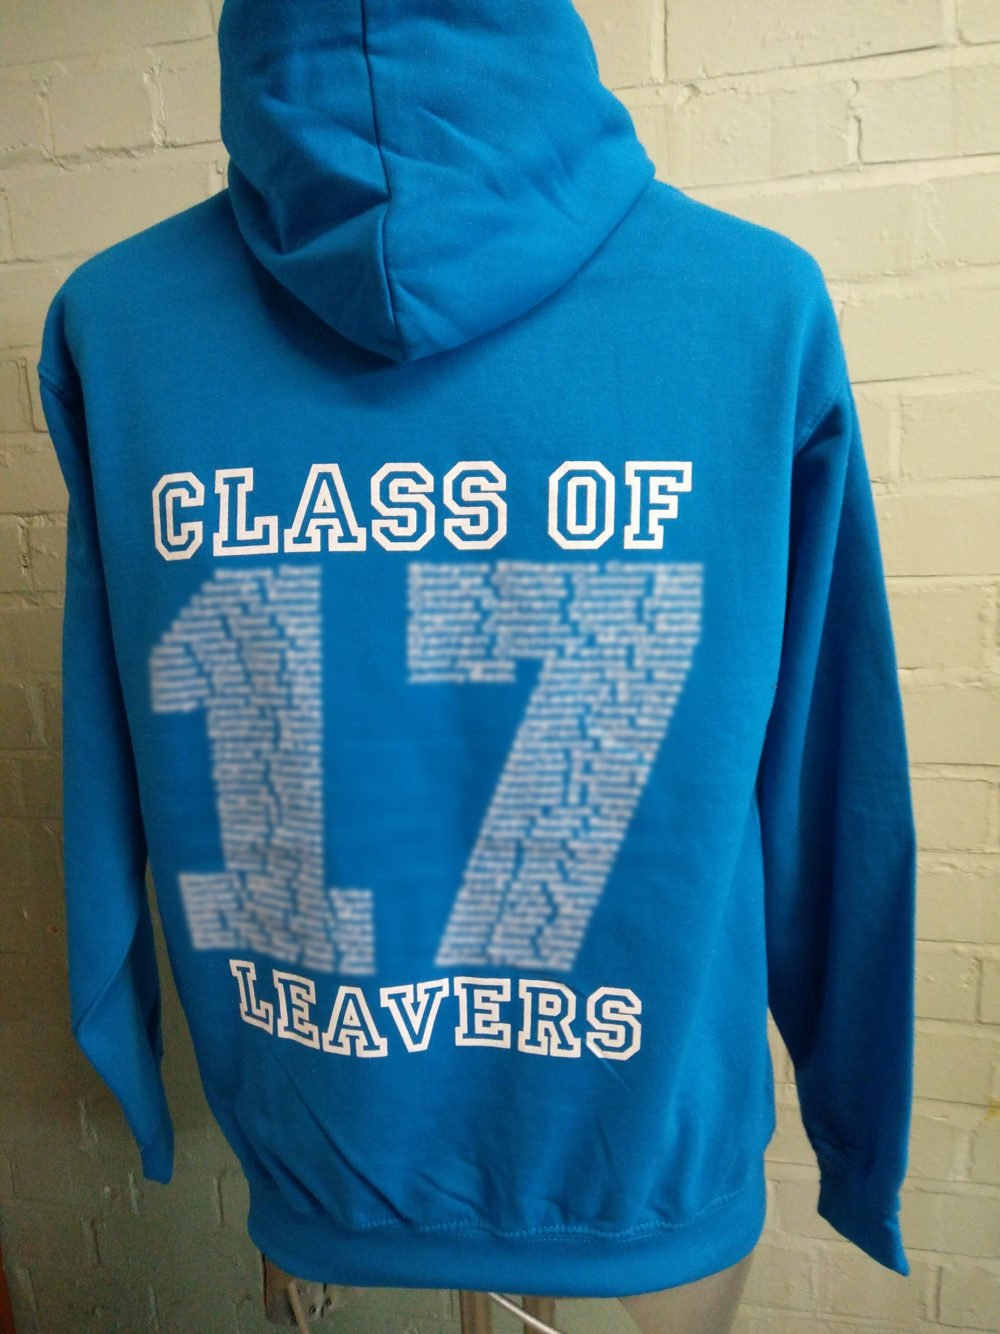 Canongate Leavers Hoodies 2017